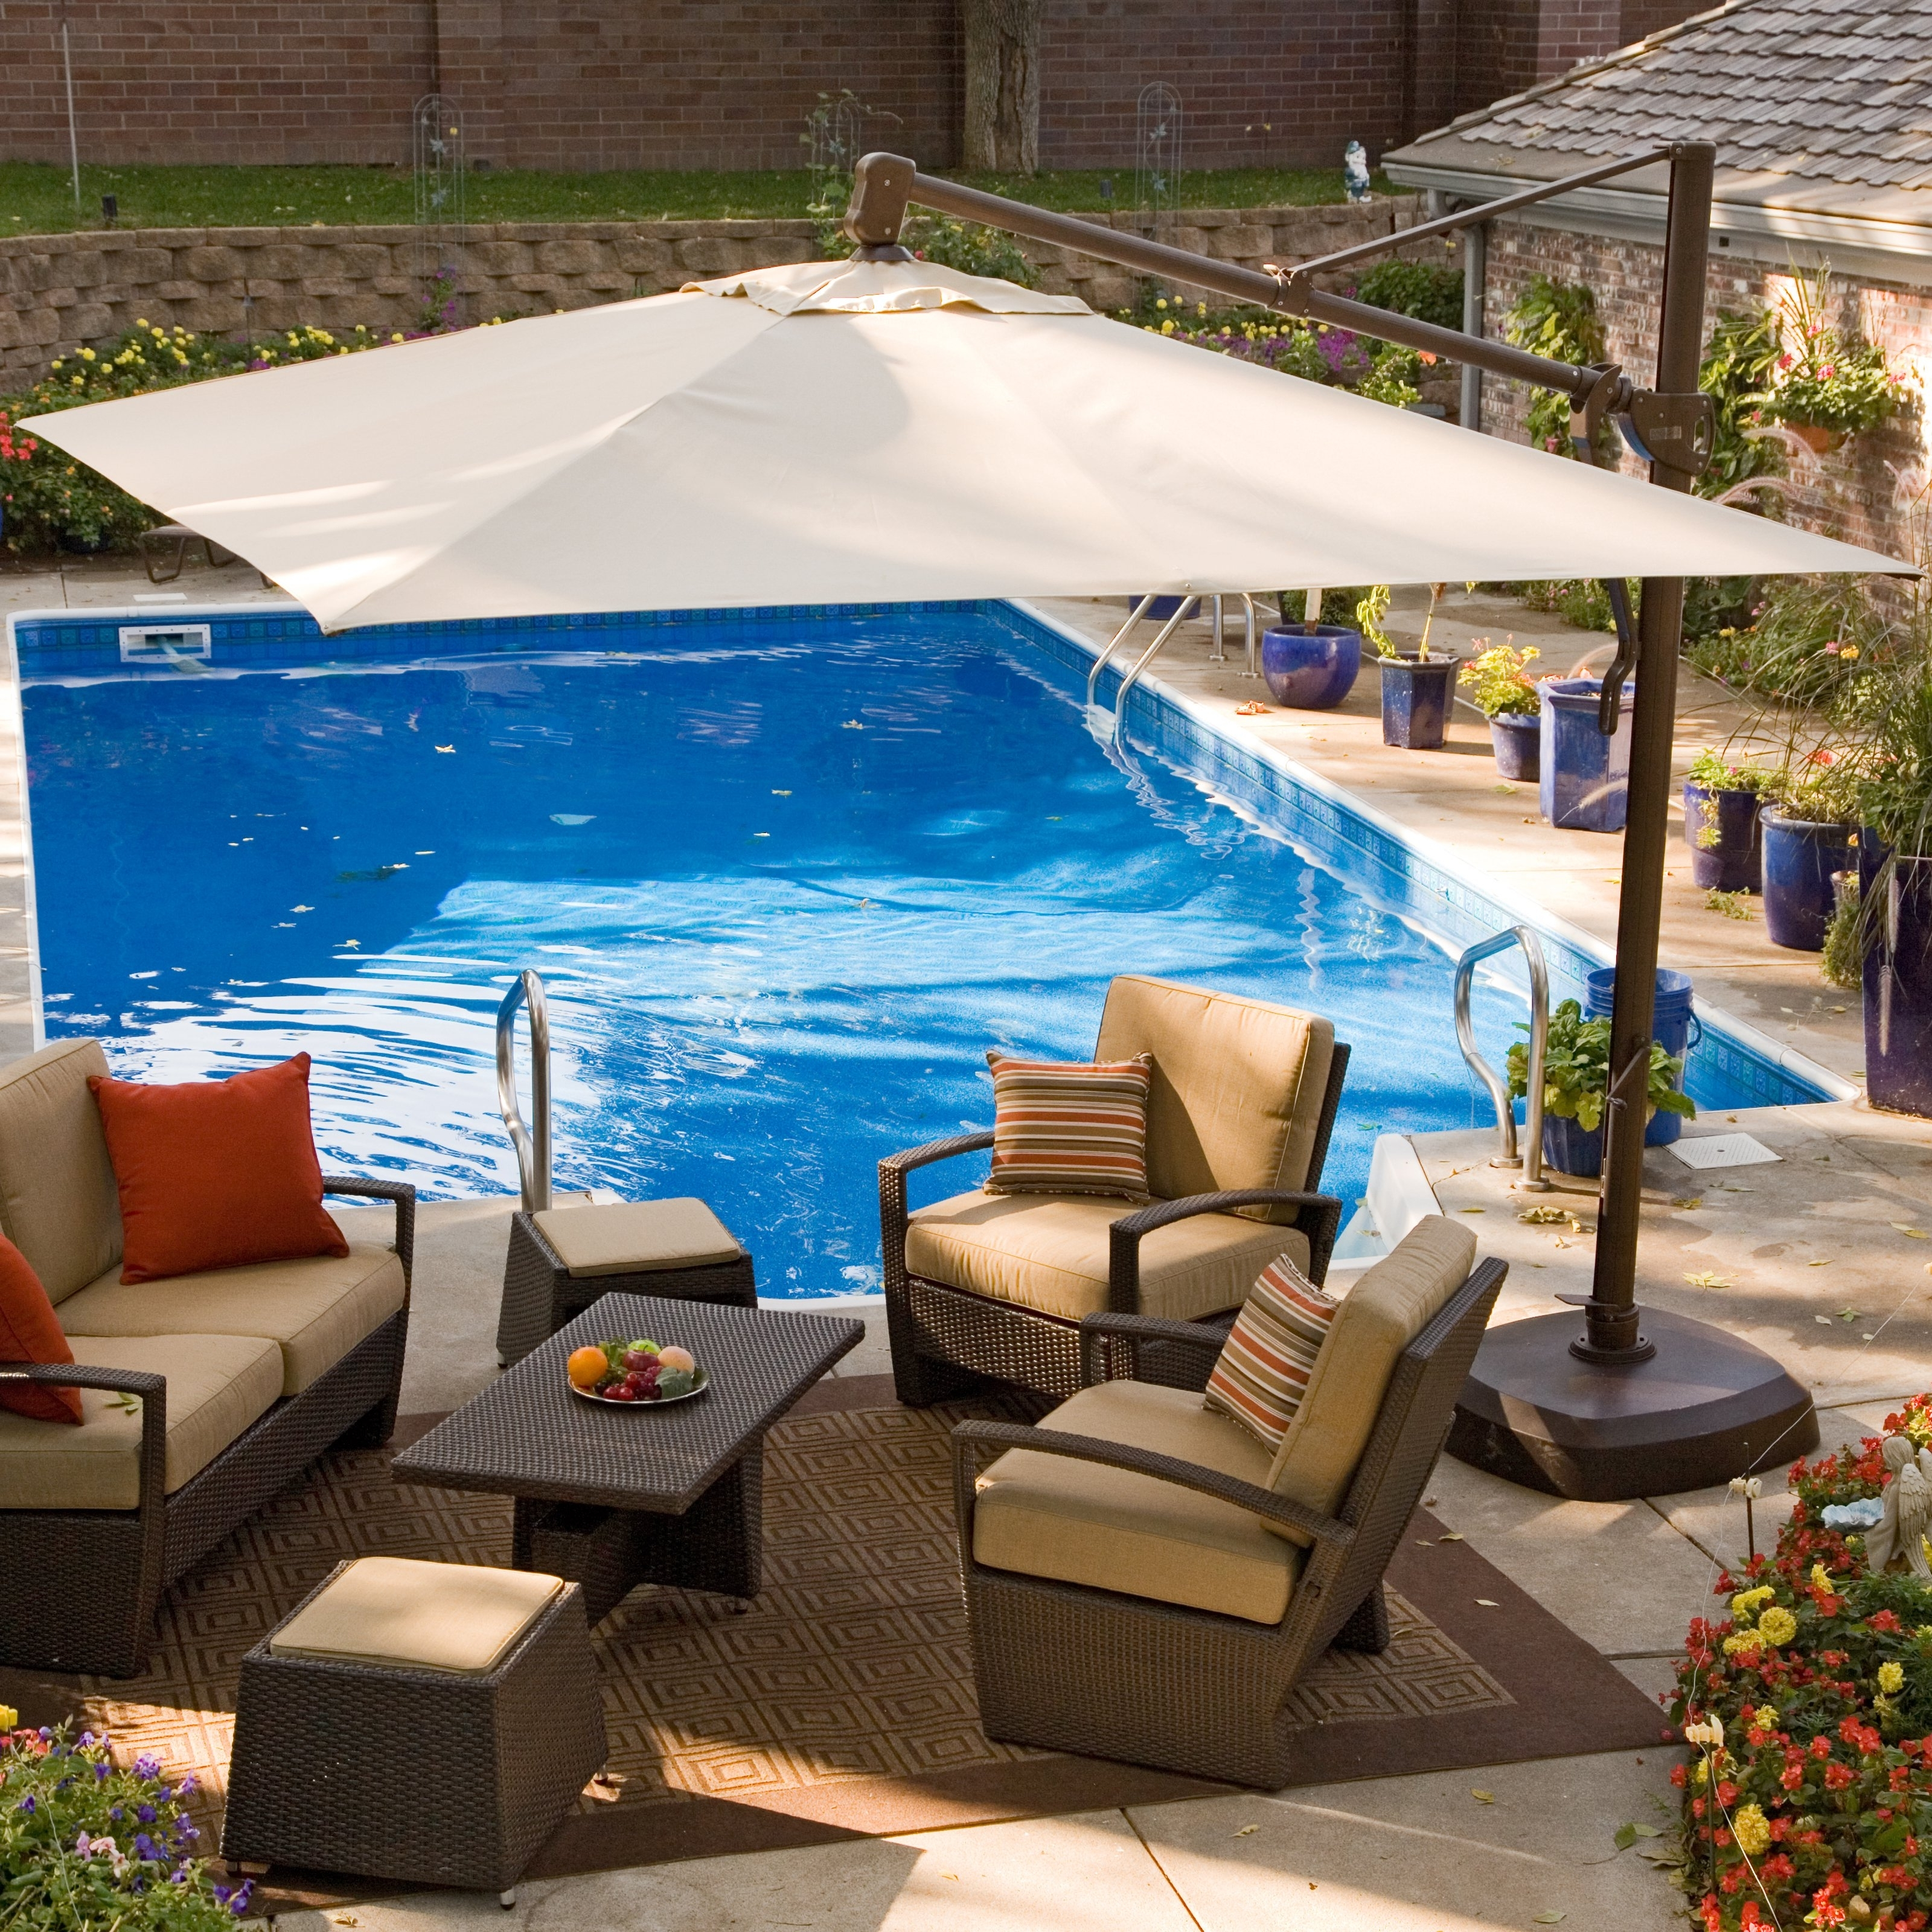 Offset Patio Umbrellas With Base Within Widely Used Patio & Garden: Stunning Offset Patio Umbrella Shields Guest (View 15 of 20)